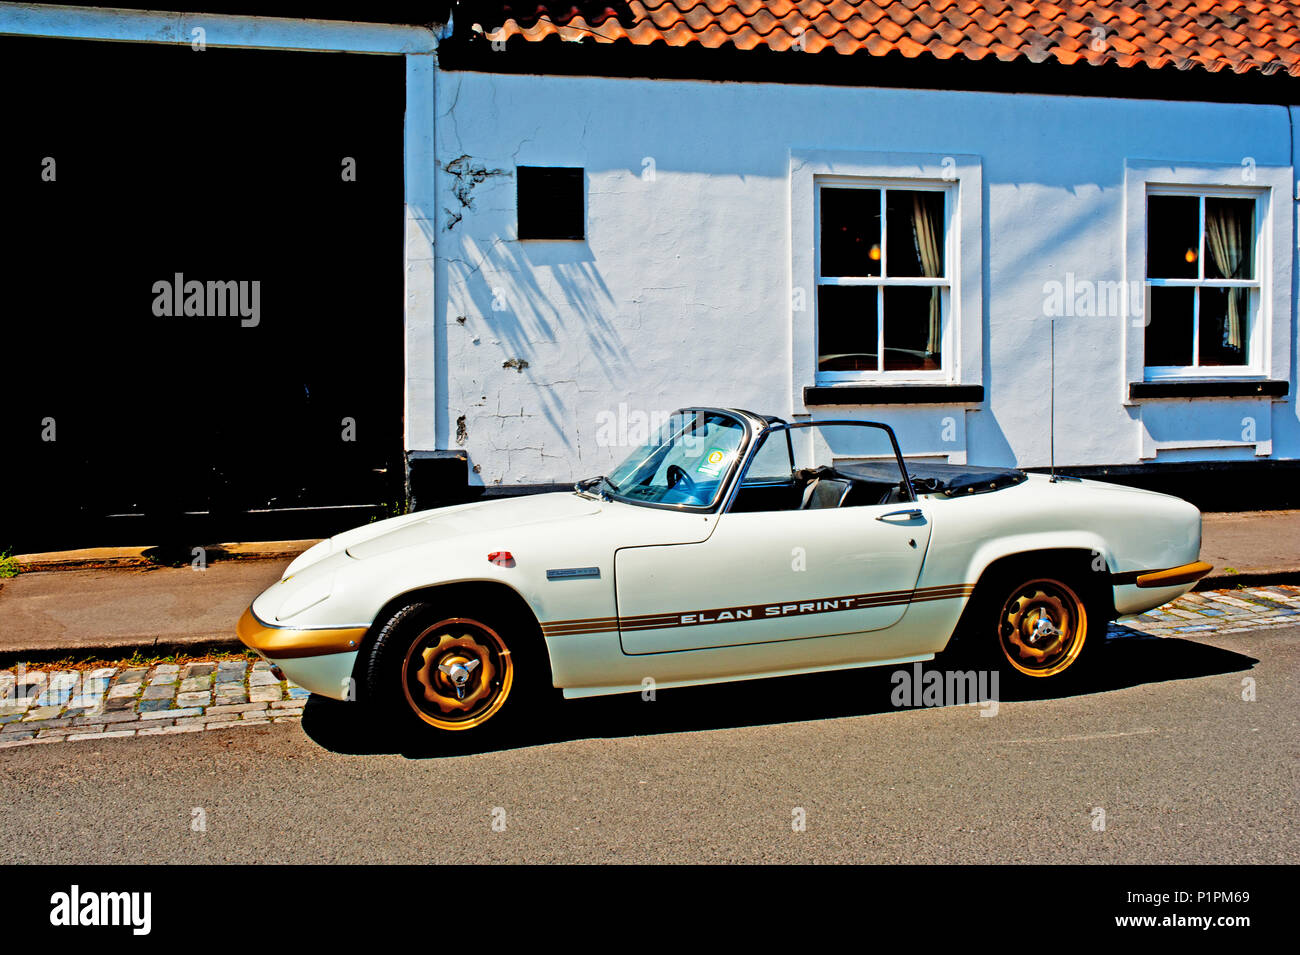 Lotus Elan S2 Sprint - Stock Image